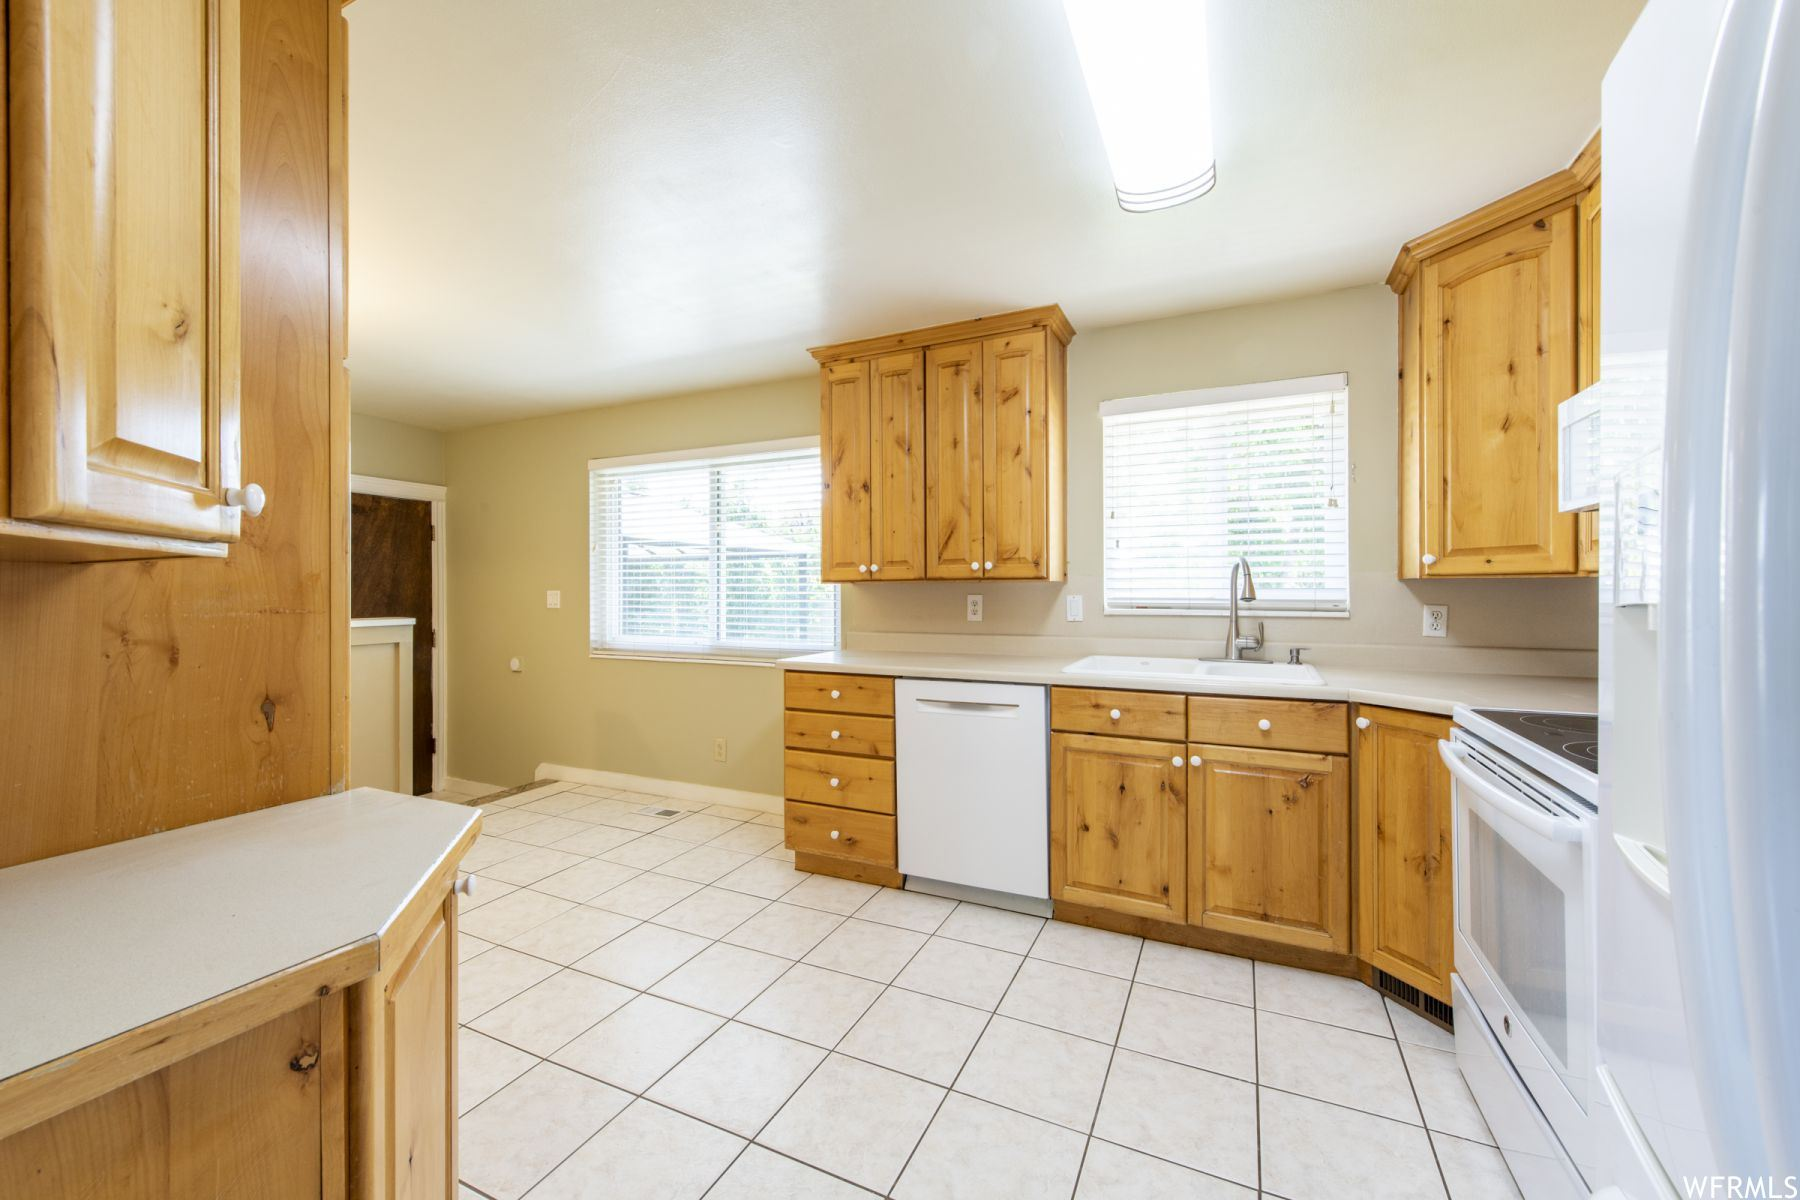 Photo of 3179 W MINUET AVE, West Valley City, UT 84119 (MLS # 1756281)